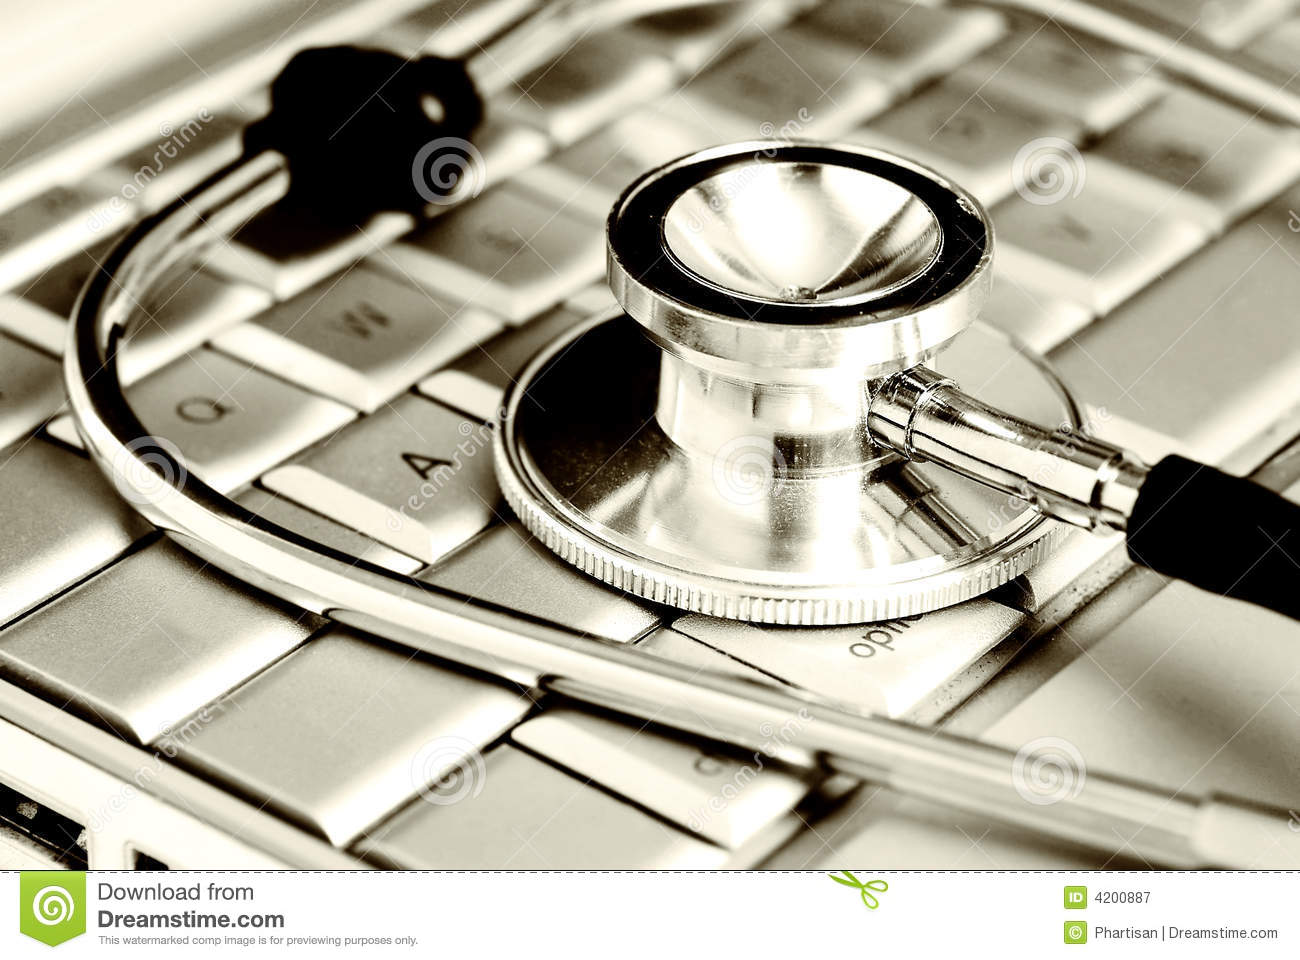 Technology and medicine - Silver stethoscope over